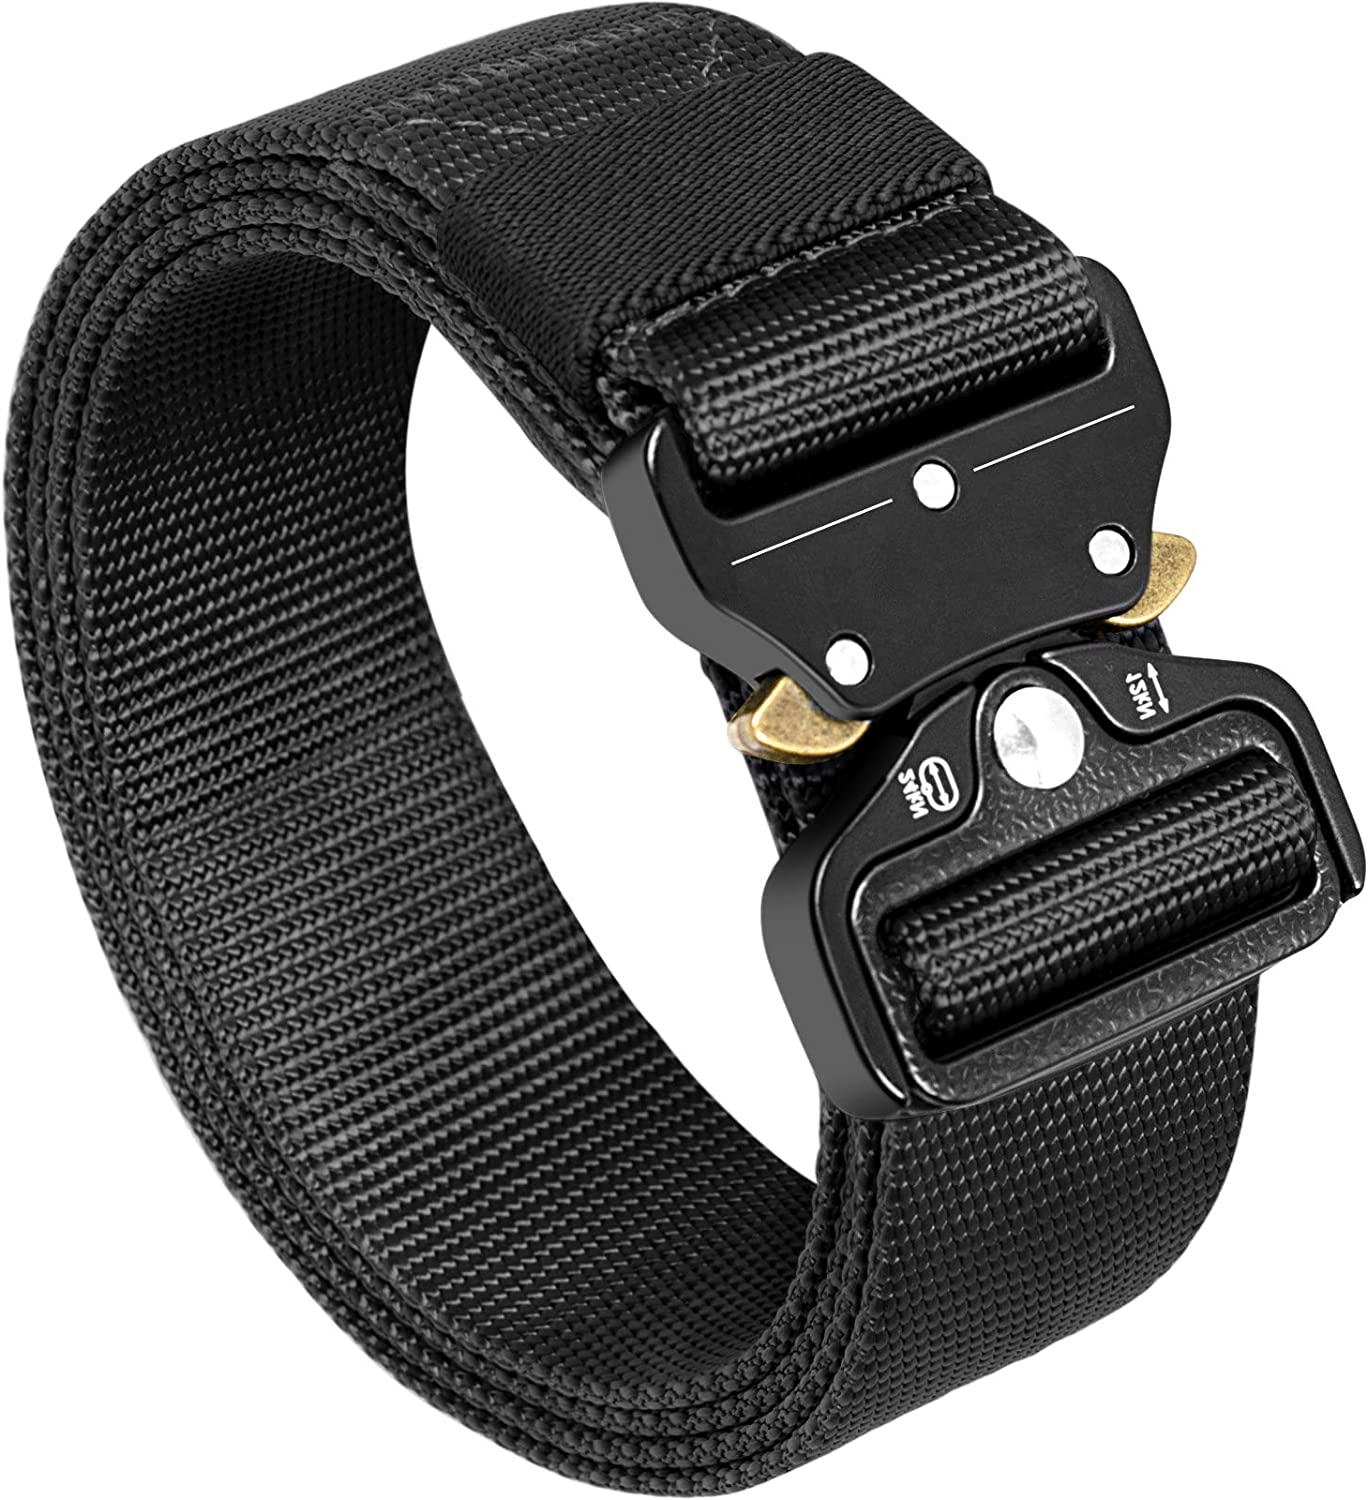 Tactical Belt Utility Belt Military Belt with Quick-Release Buckle /& Accessories